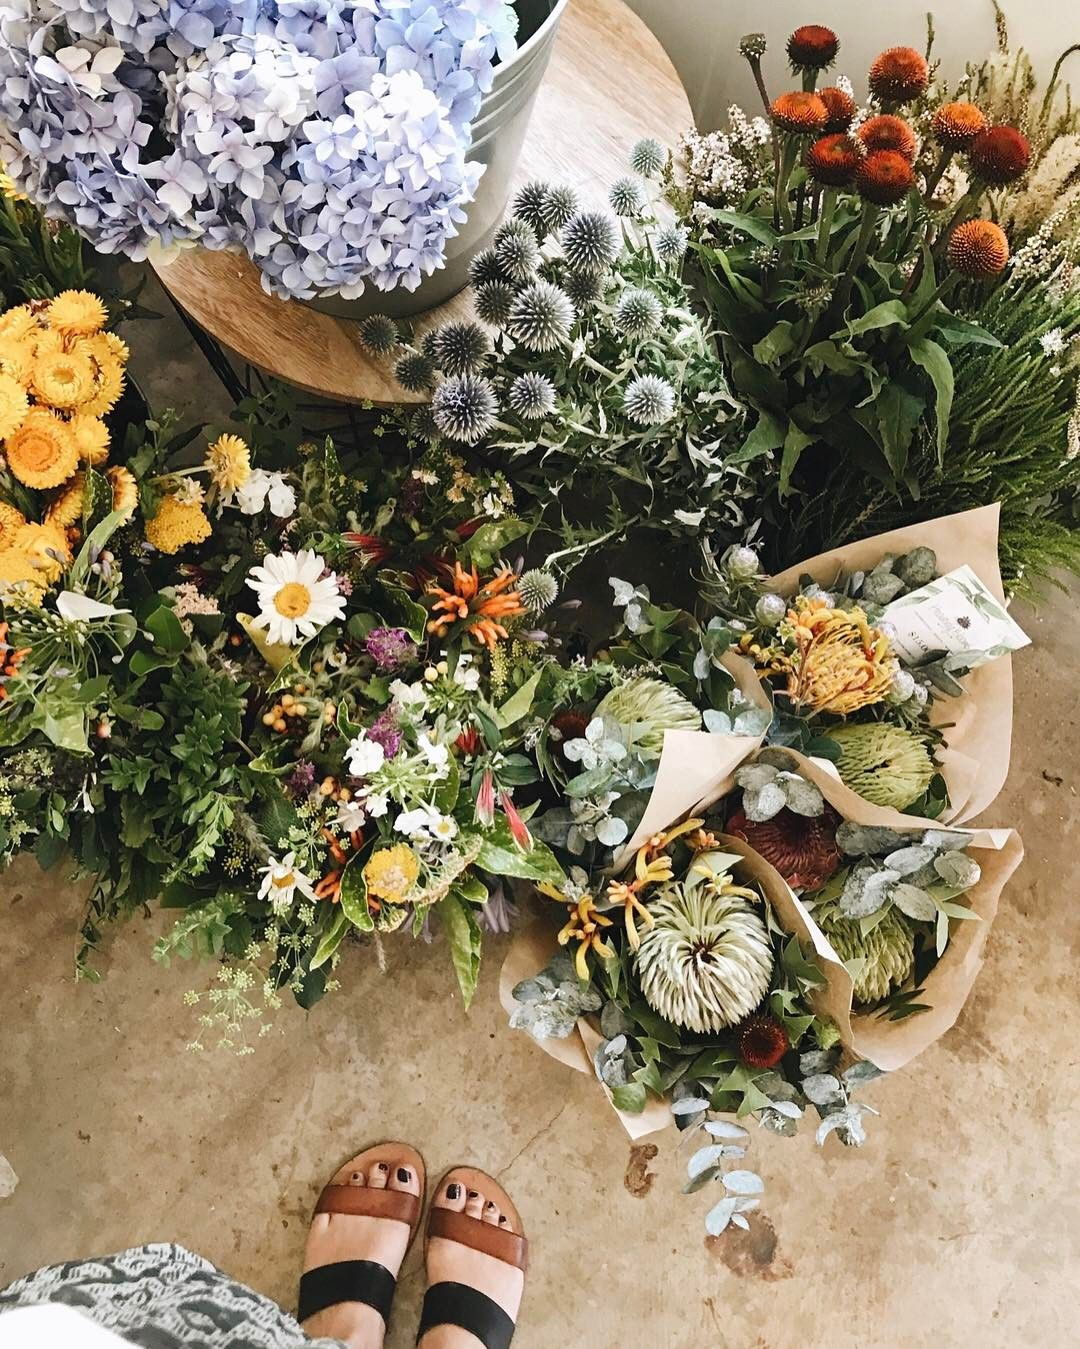 Pin by chlo on flora pinterest spring flowers australia and spring flowers at the eumundi markets in australia mightylinksfo